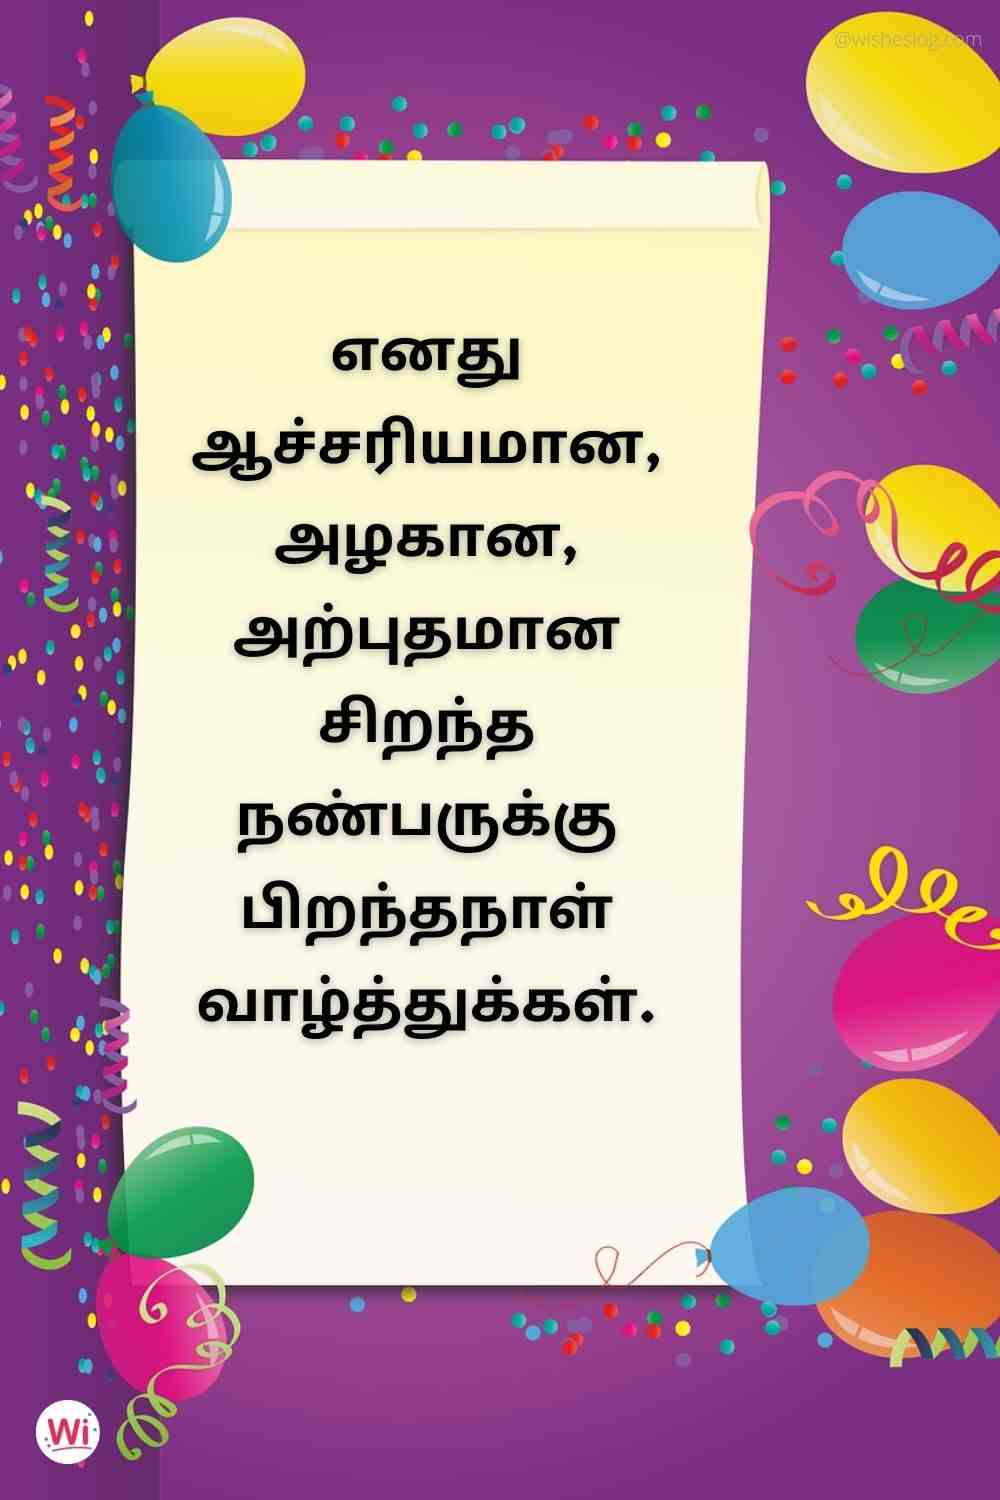 happy birthday wishes in tamil for friend